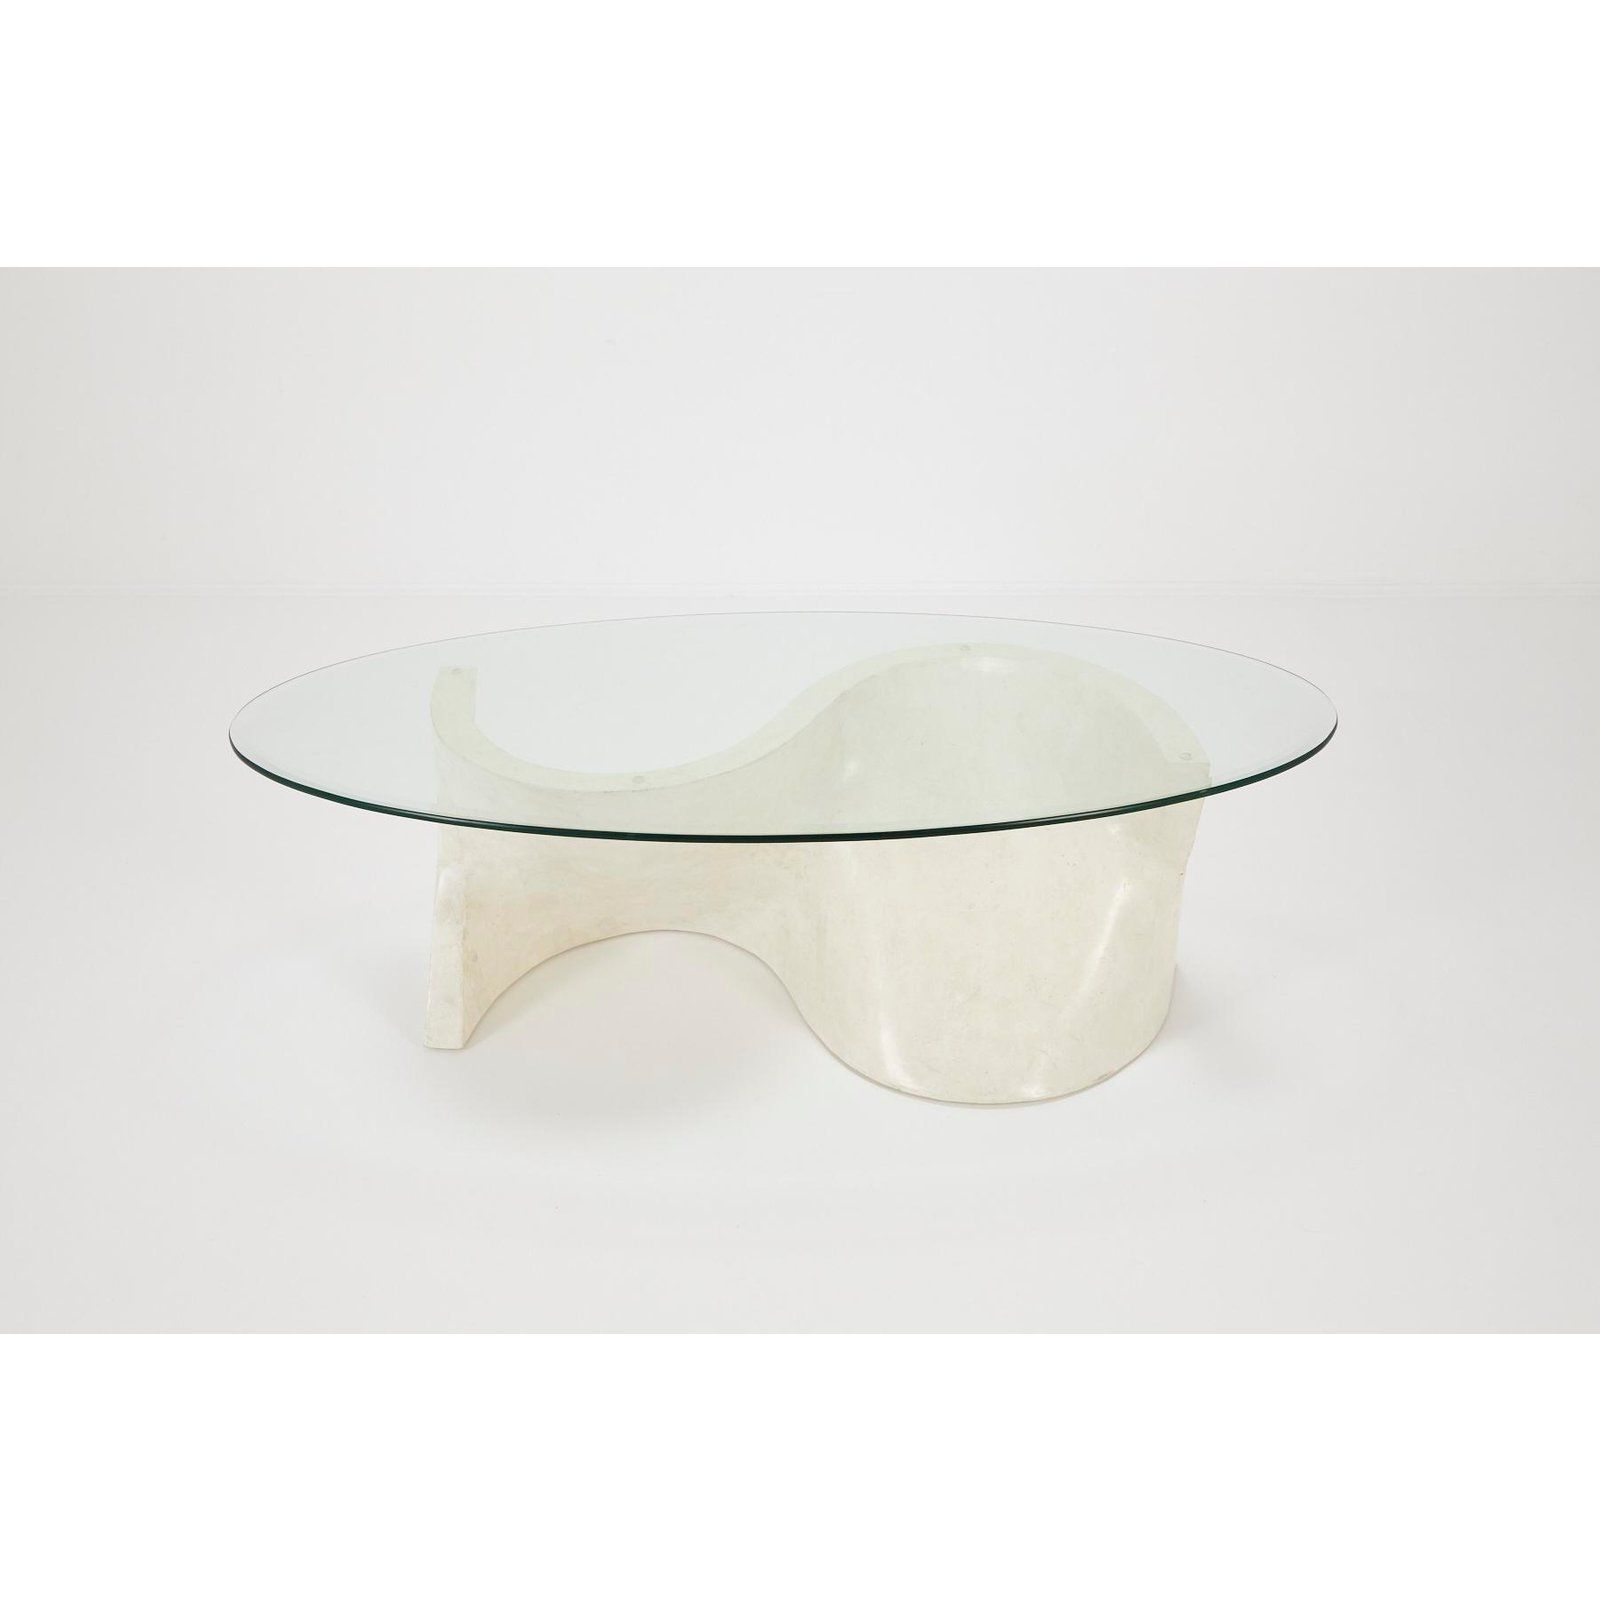 Tim Clear Glass Coffee Table With High Gloss White Base Modern Glass Coffee Table Coffee Table Design Modern Coffee Table [ 909 x 1000 Pixel ]